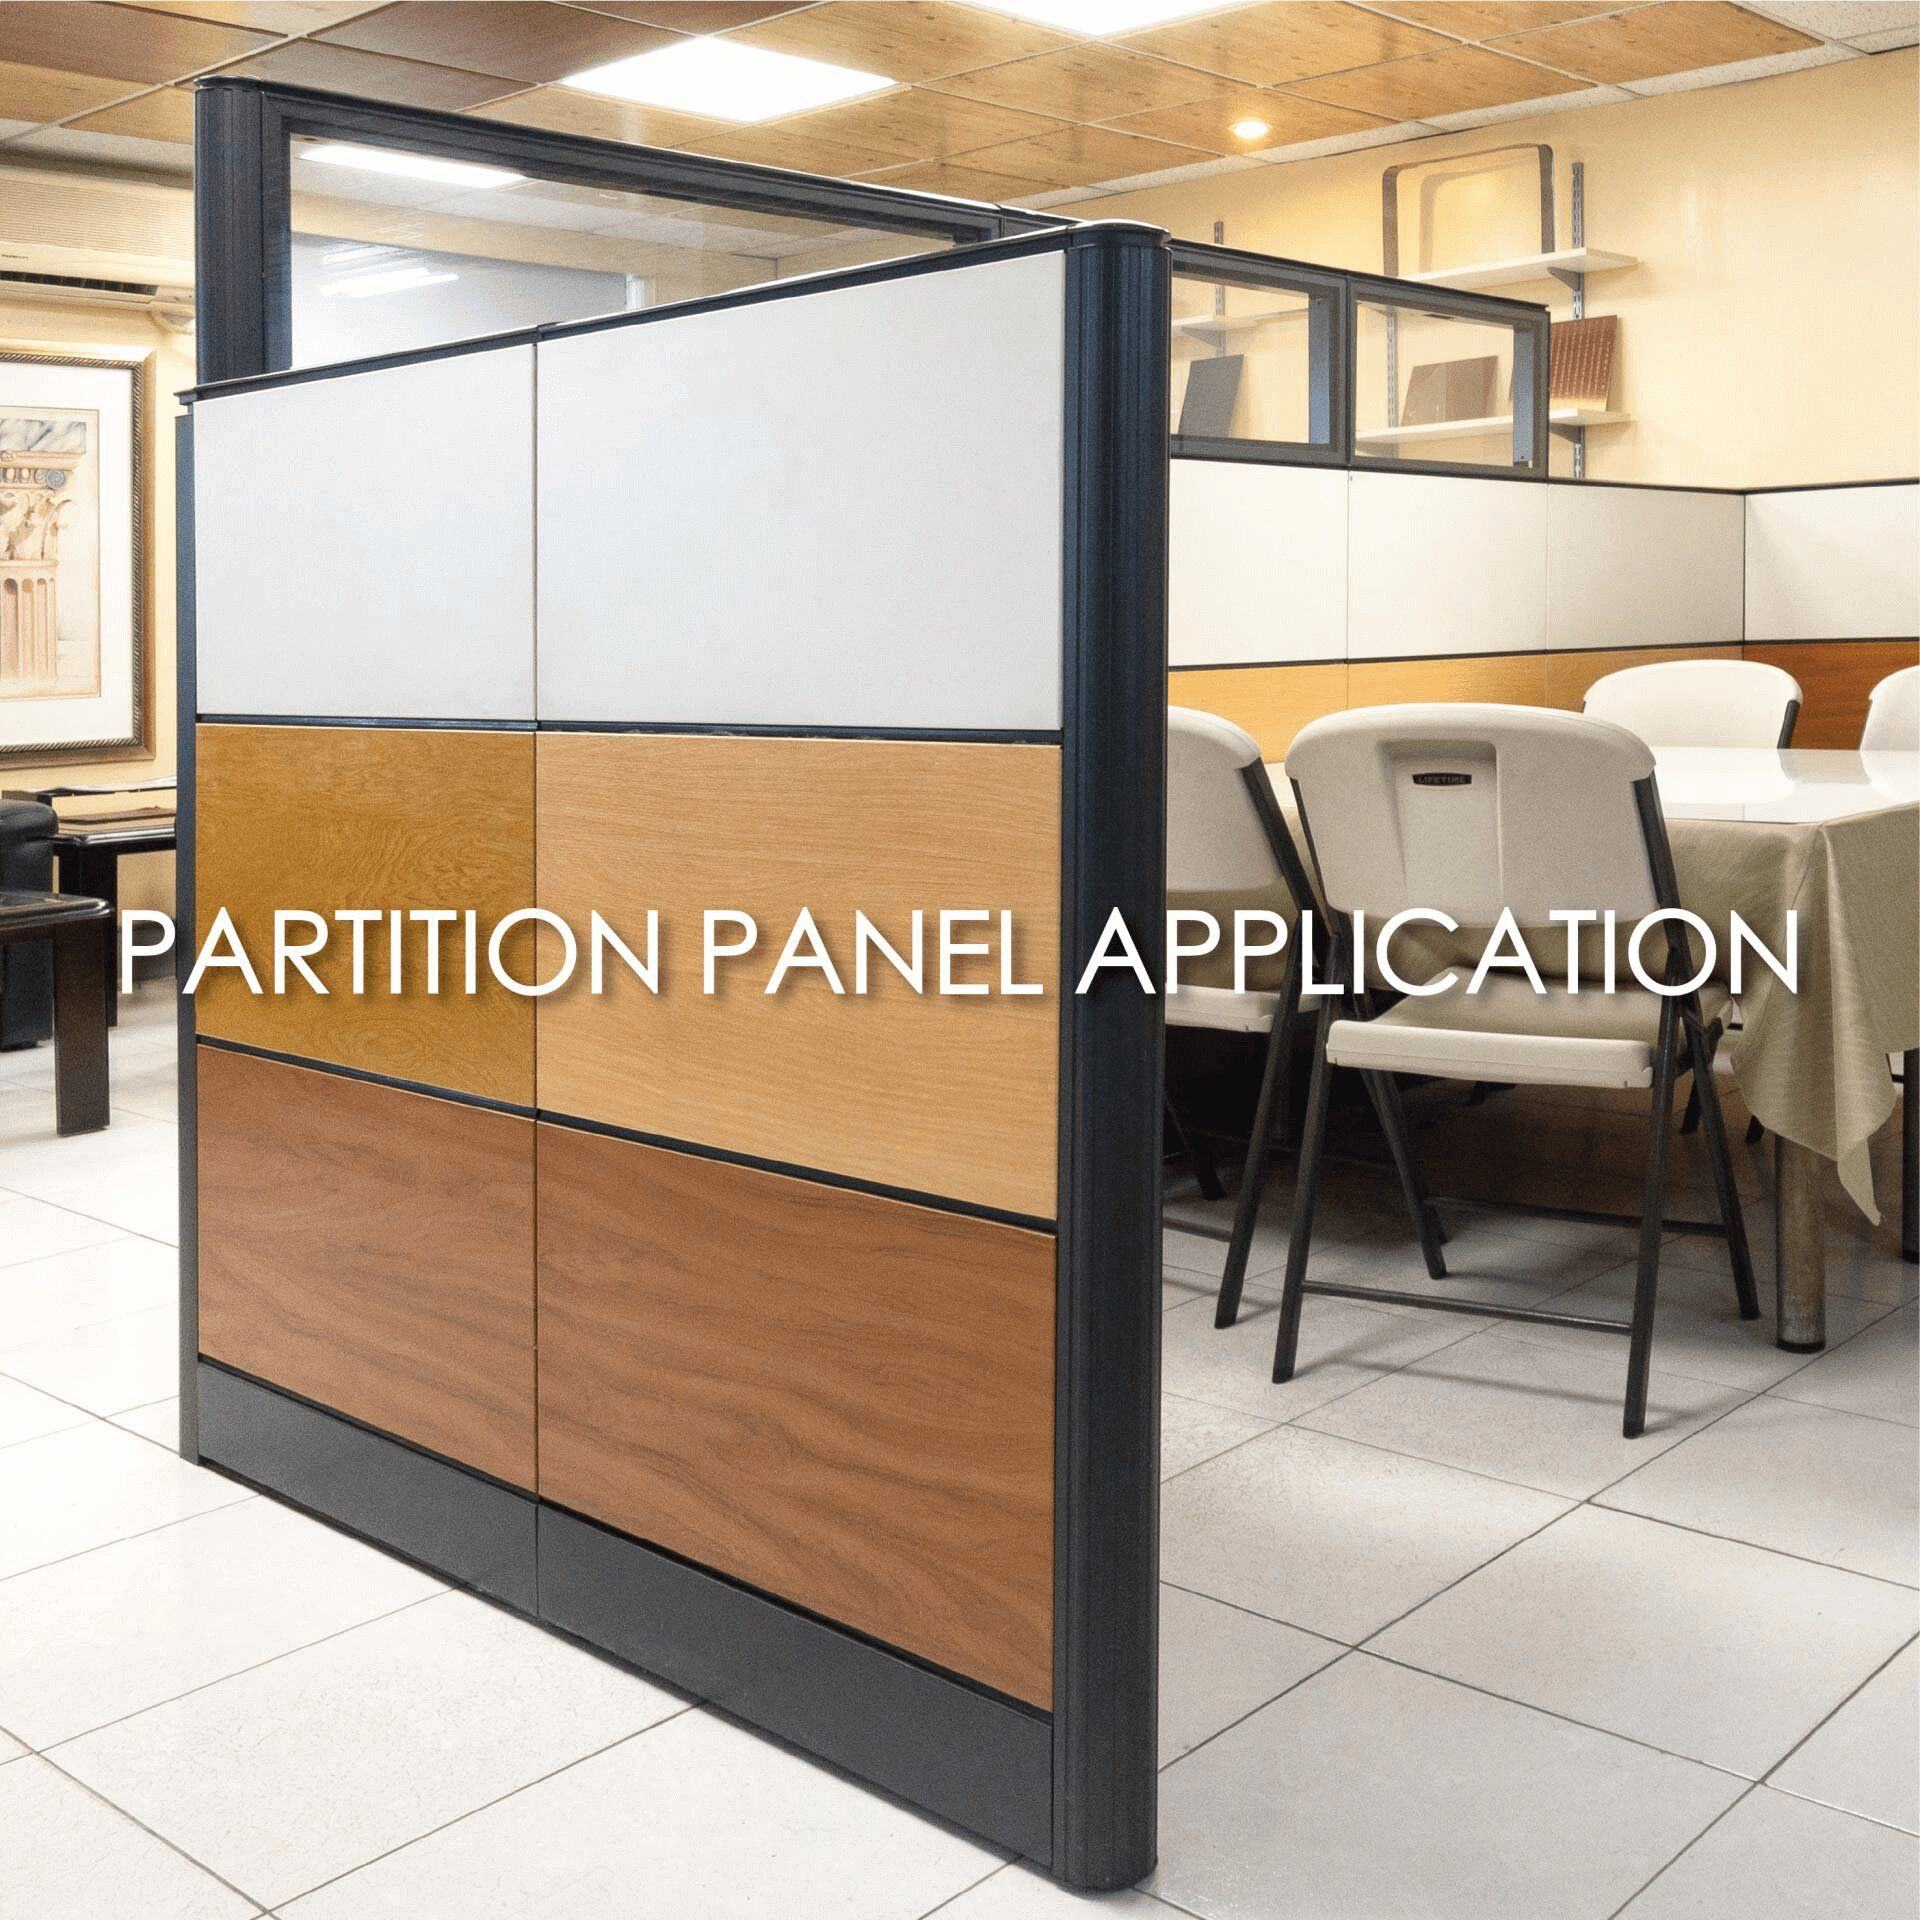 Using laminated metal to create office compartment screens for added decorative and durability